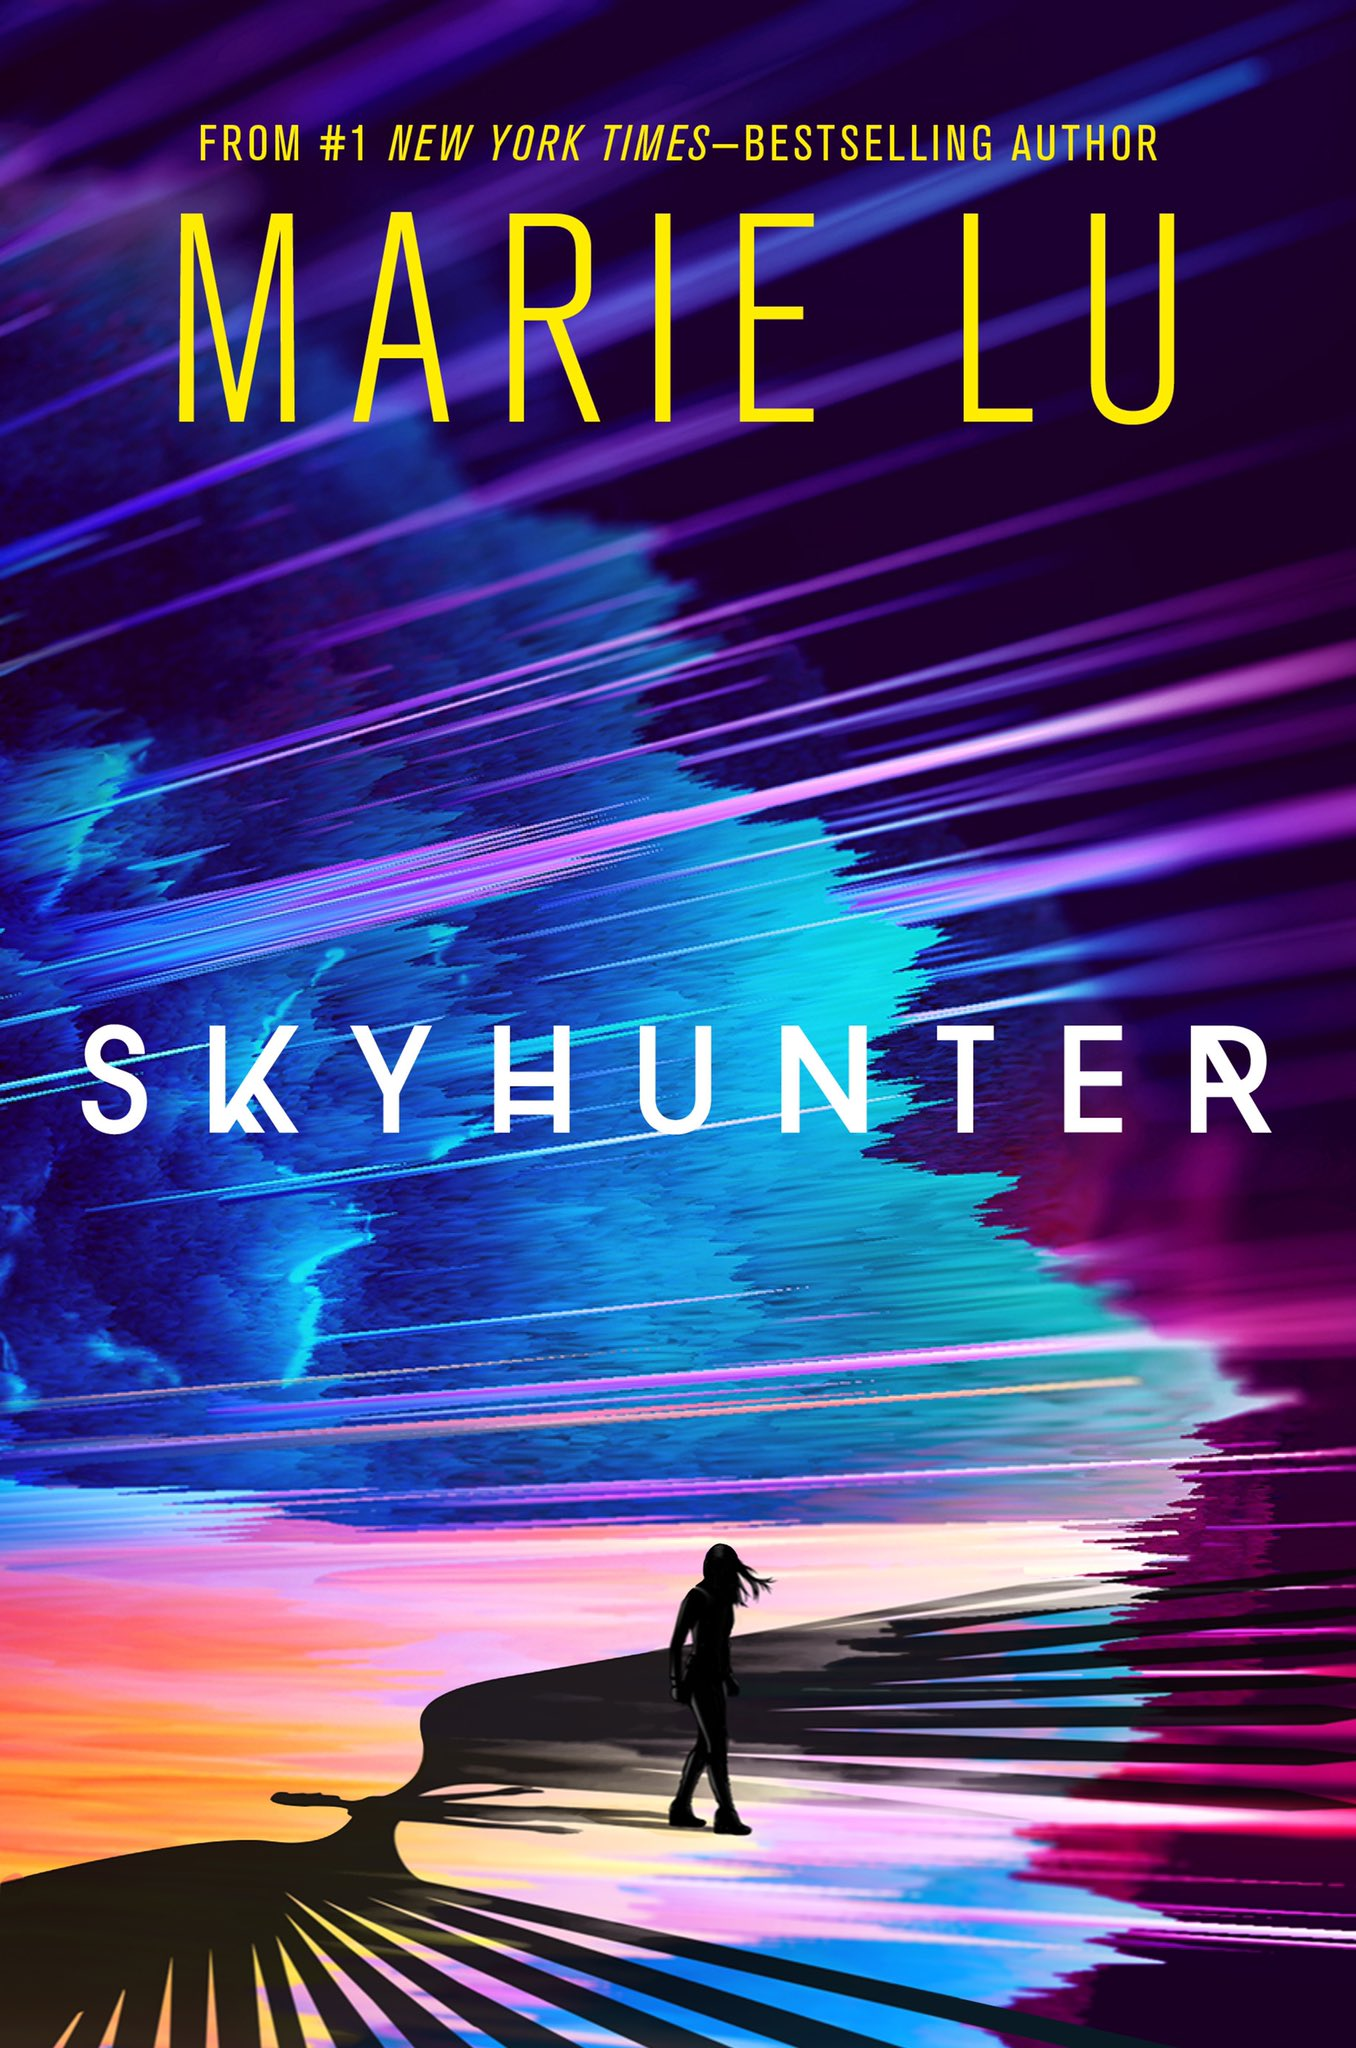 Skyhunter (Skyhunter, #1) by Marie Lu